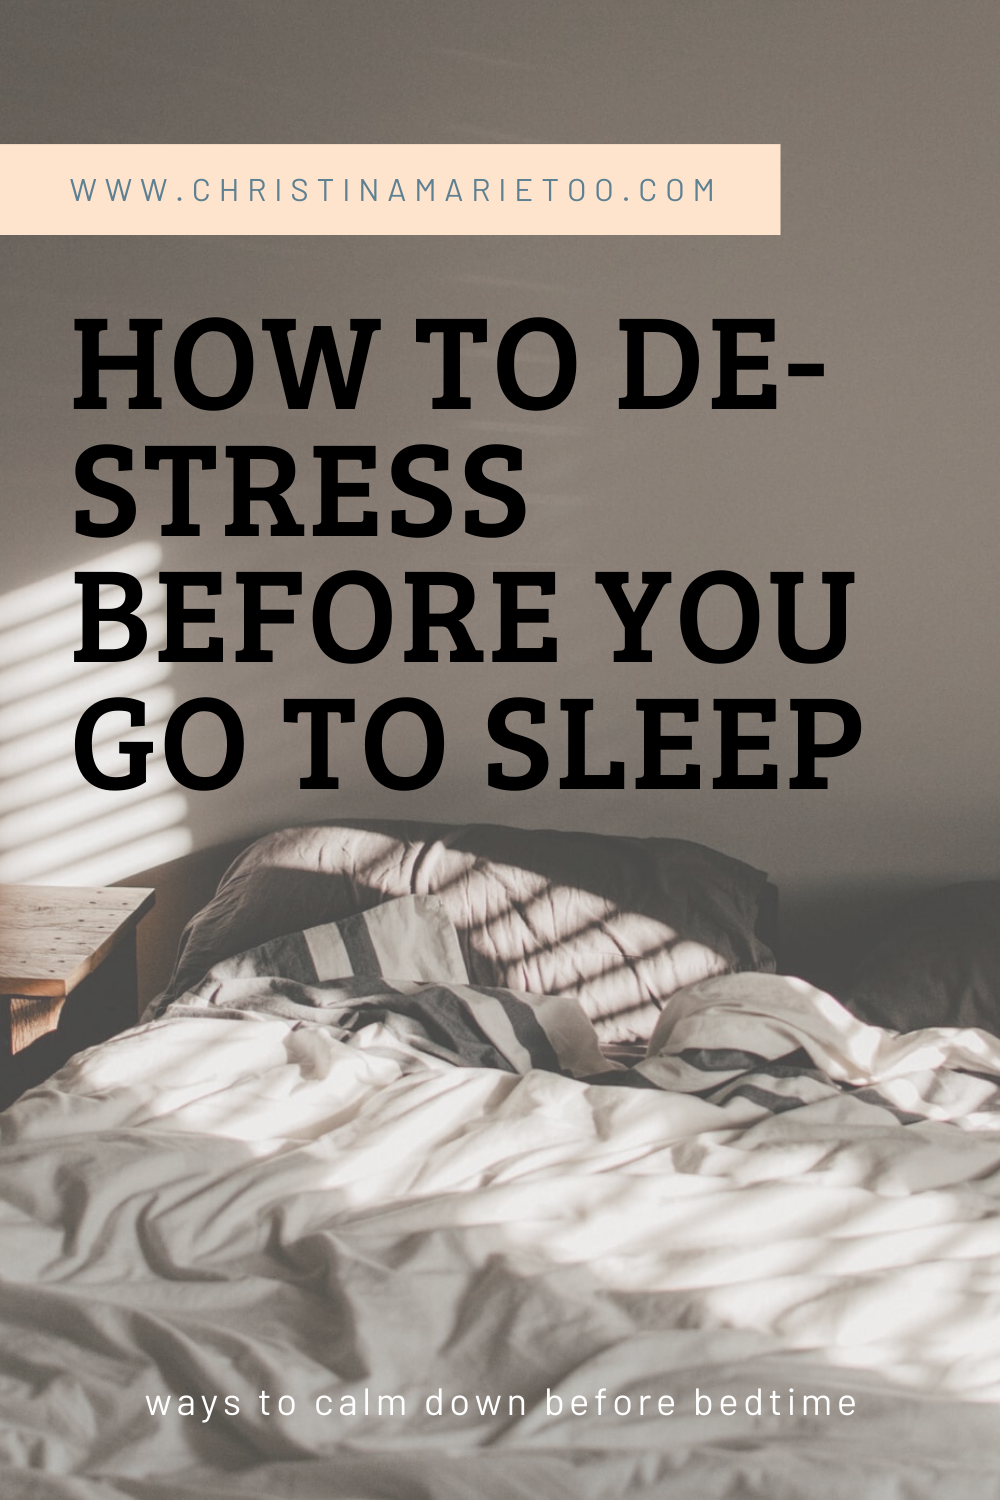 HOW TO DE-STRESS BEFORE YOU GO TO SLEEP